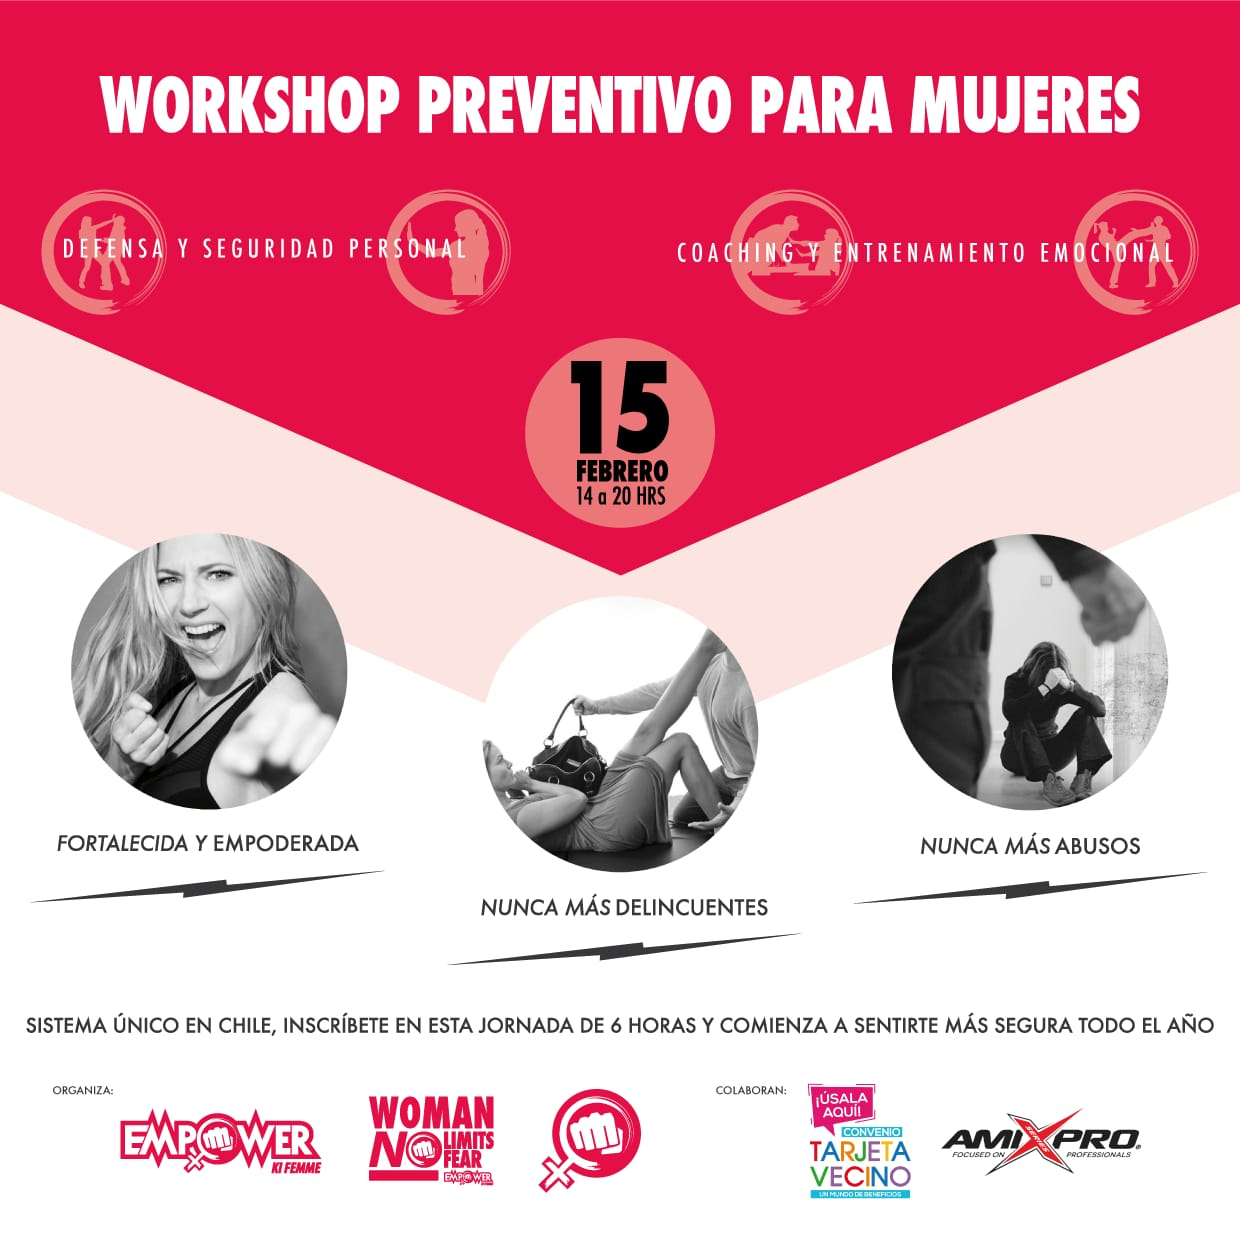 WORKSHOP PREVENTIVO PARA MUJERES